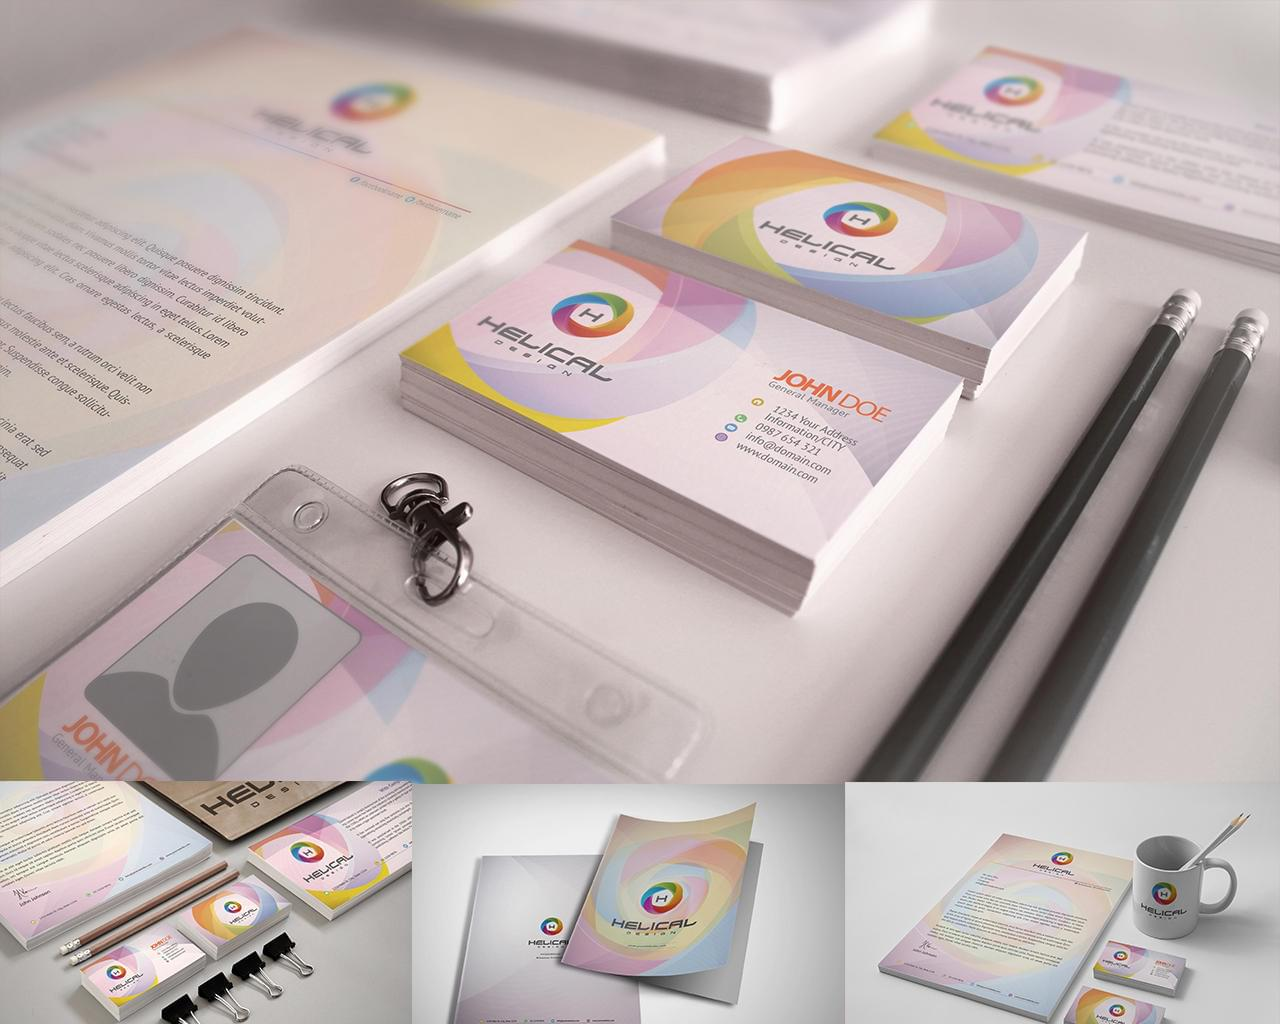 Professional Stationery Design & Corporate and Branding of Identity Designs by hsynkyc - 114303